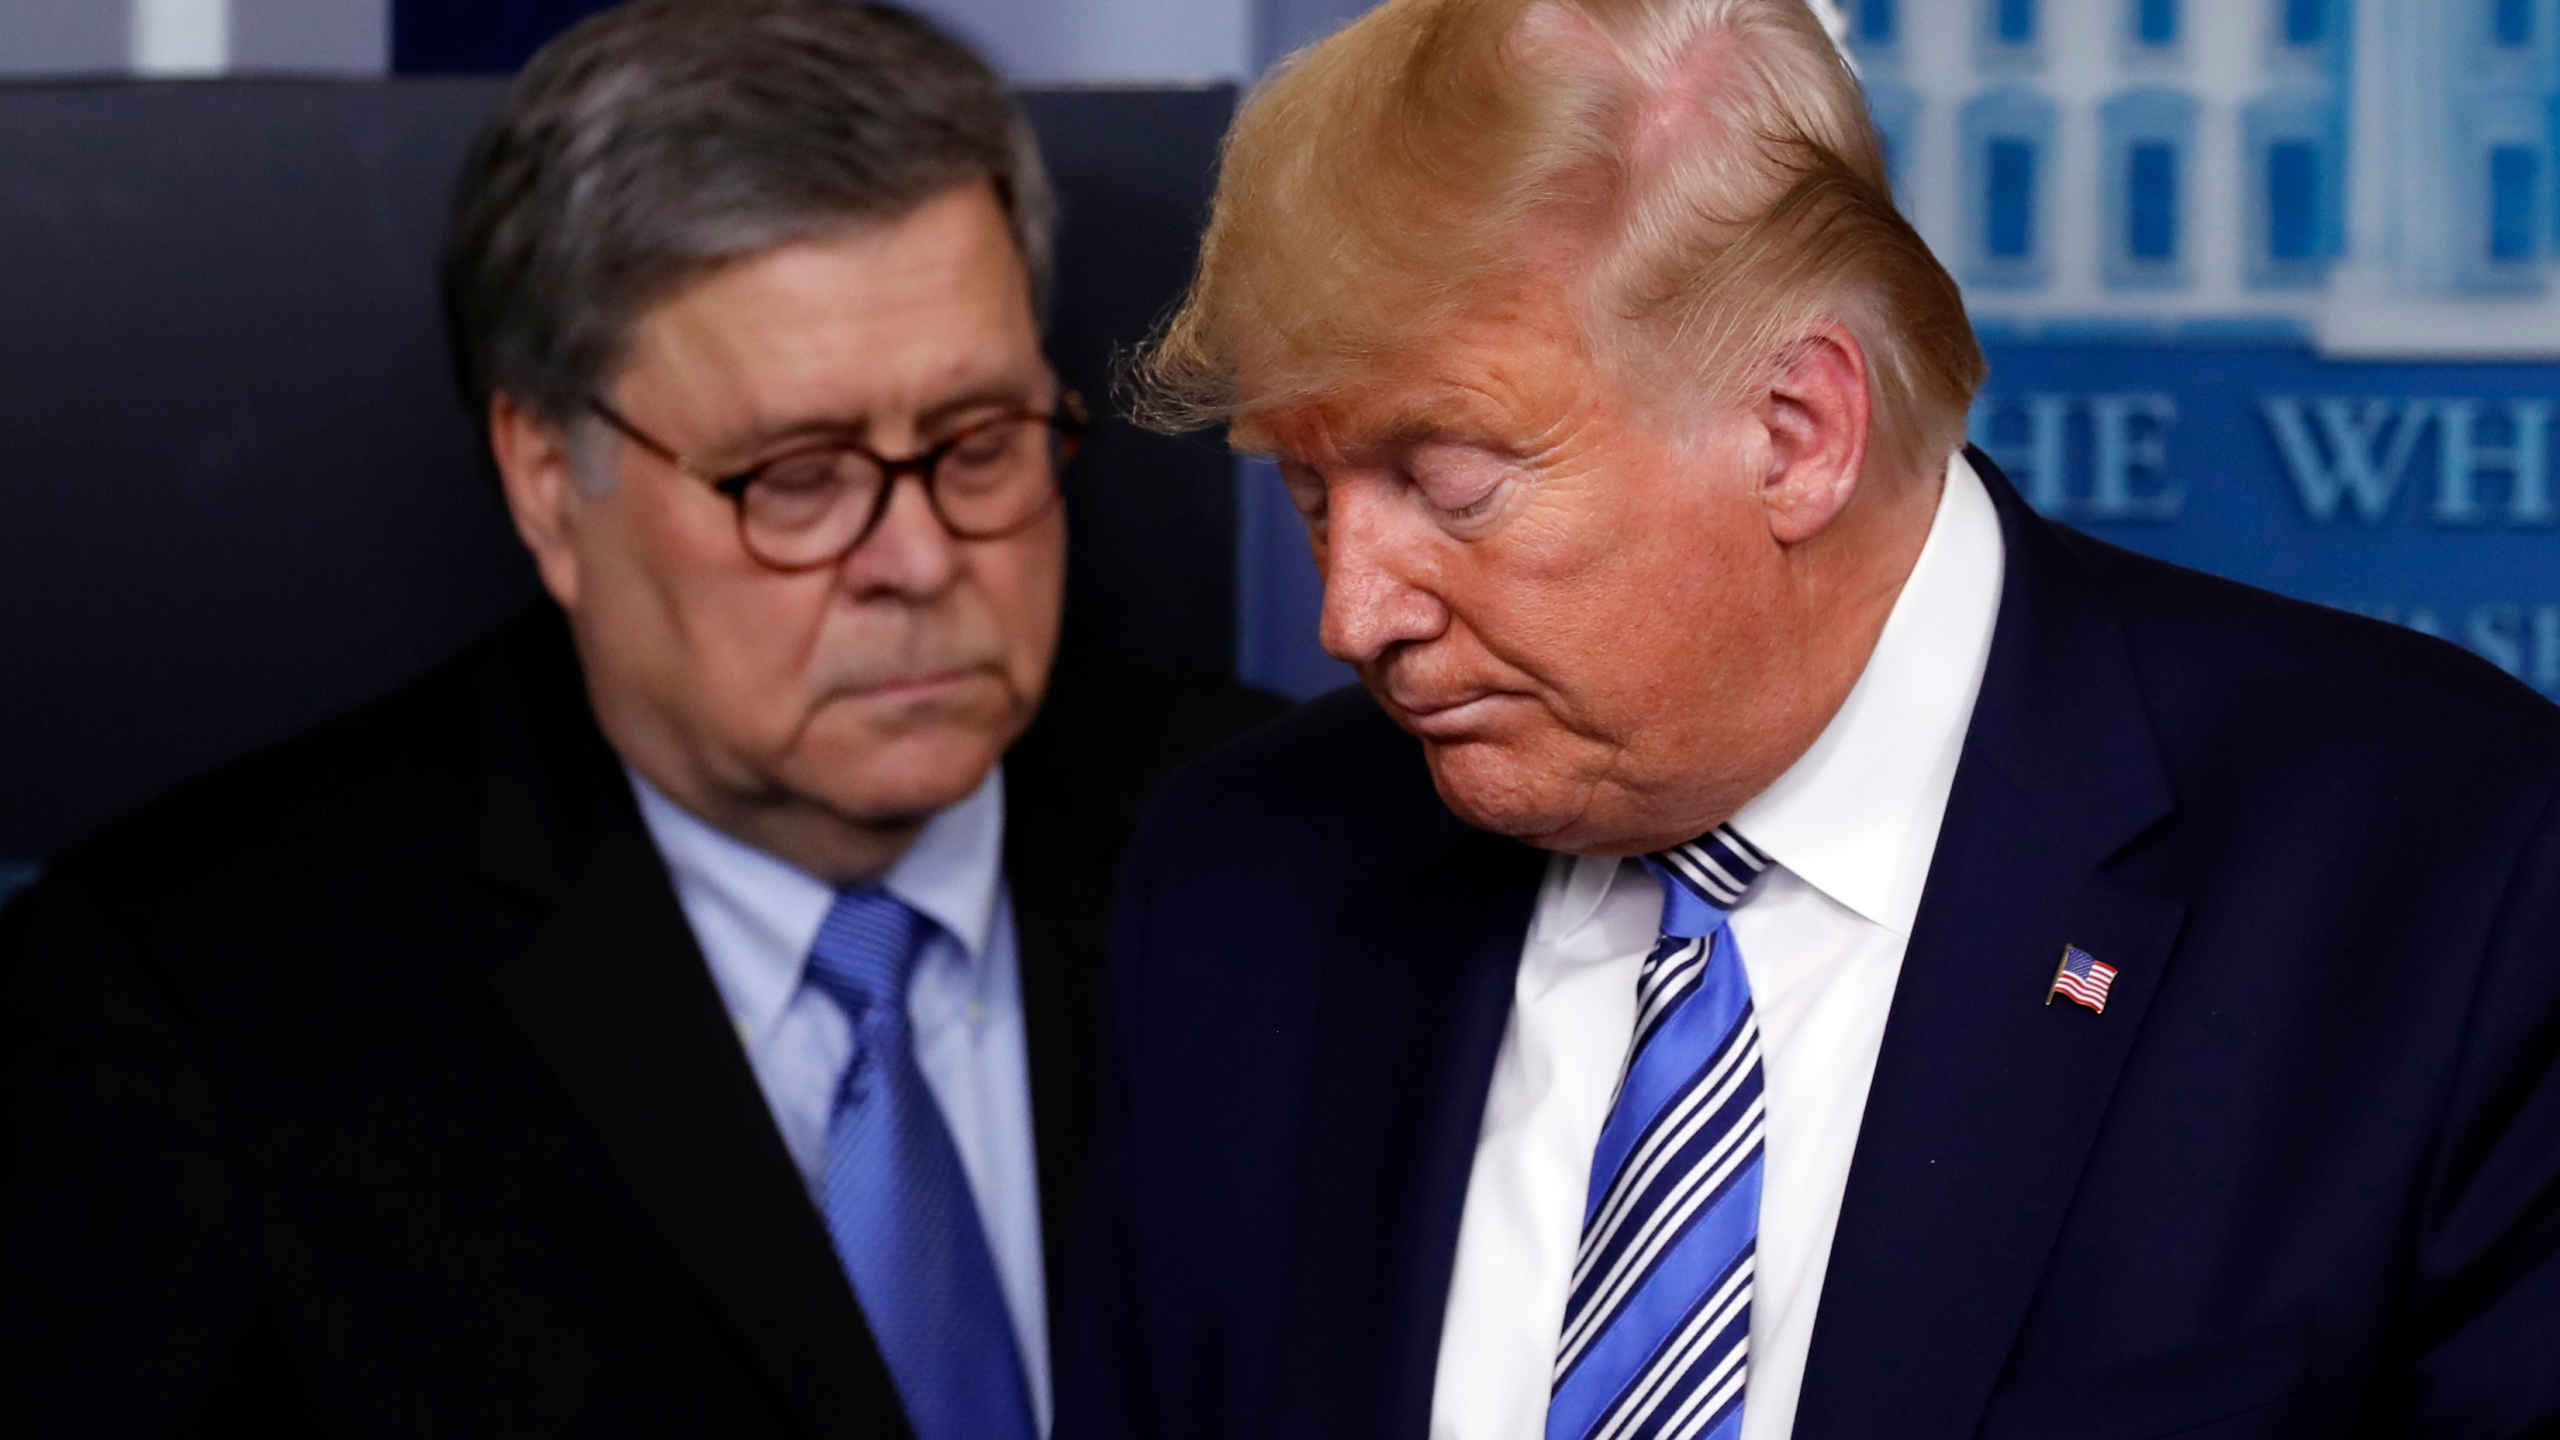 Donald Trump, William Barr